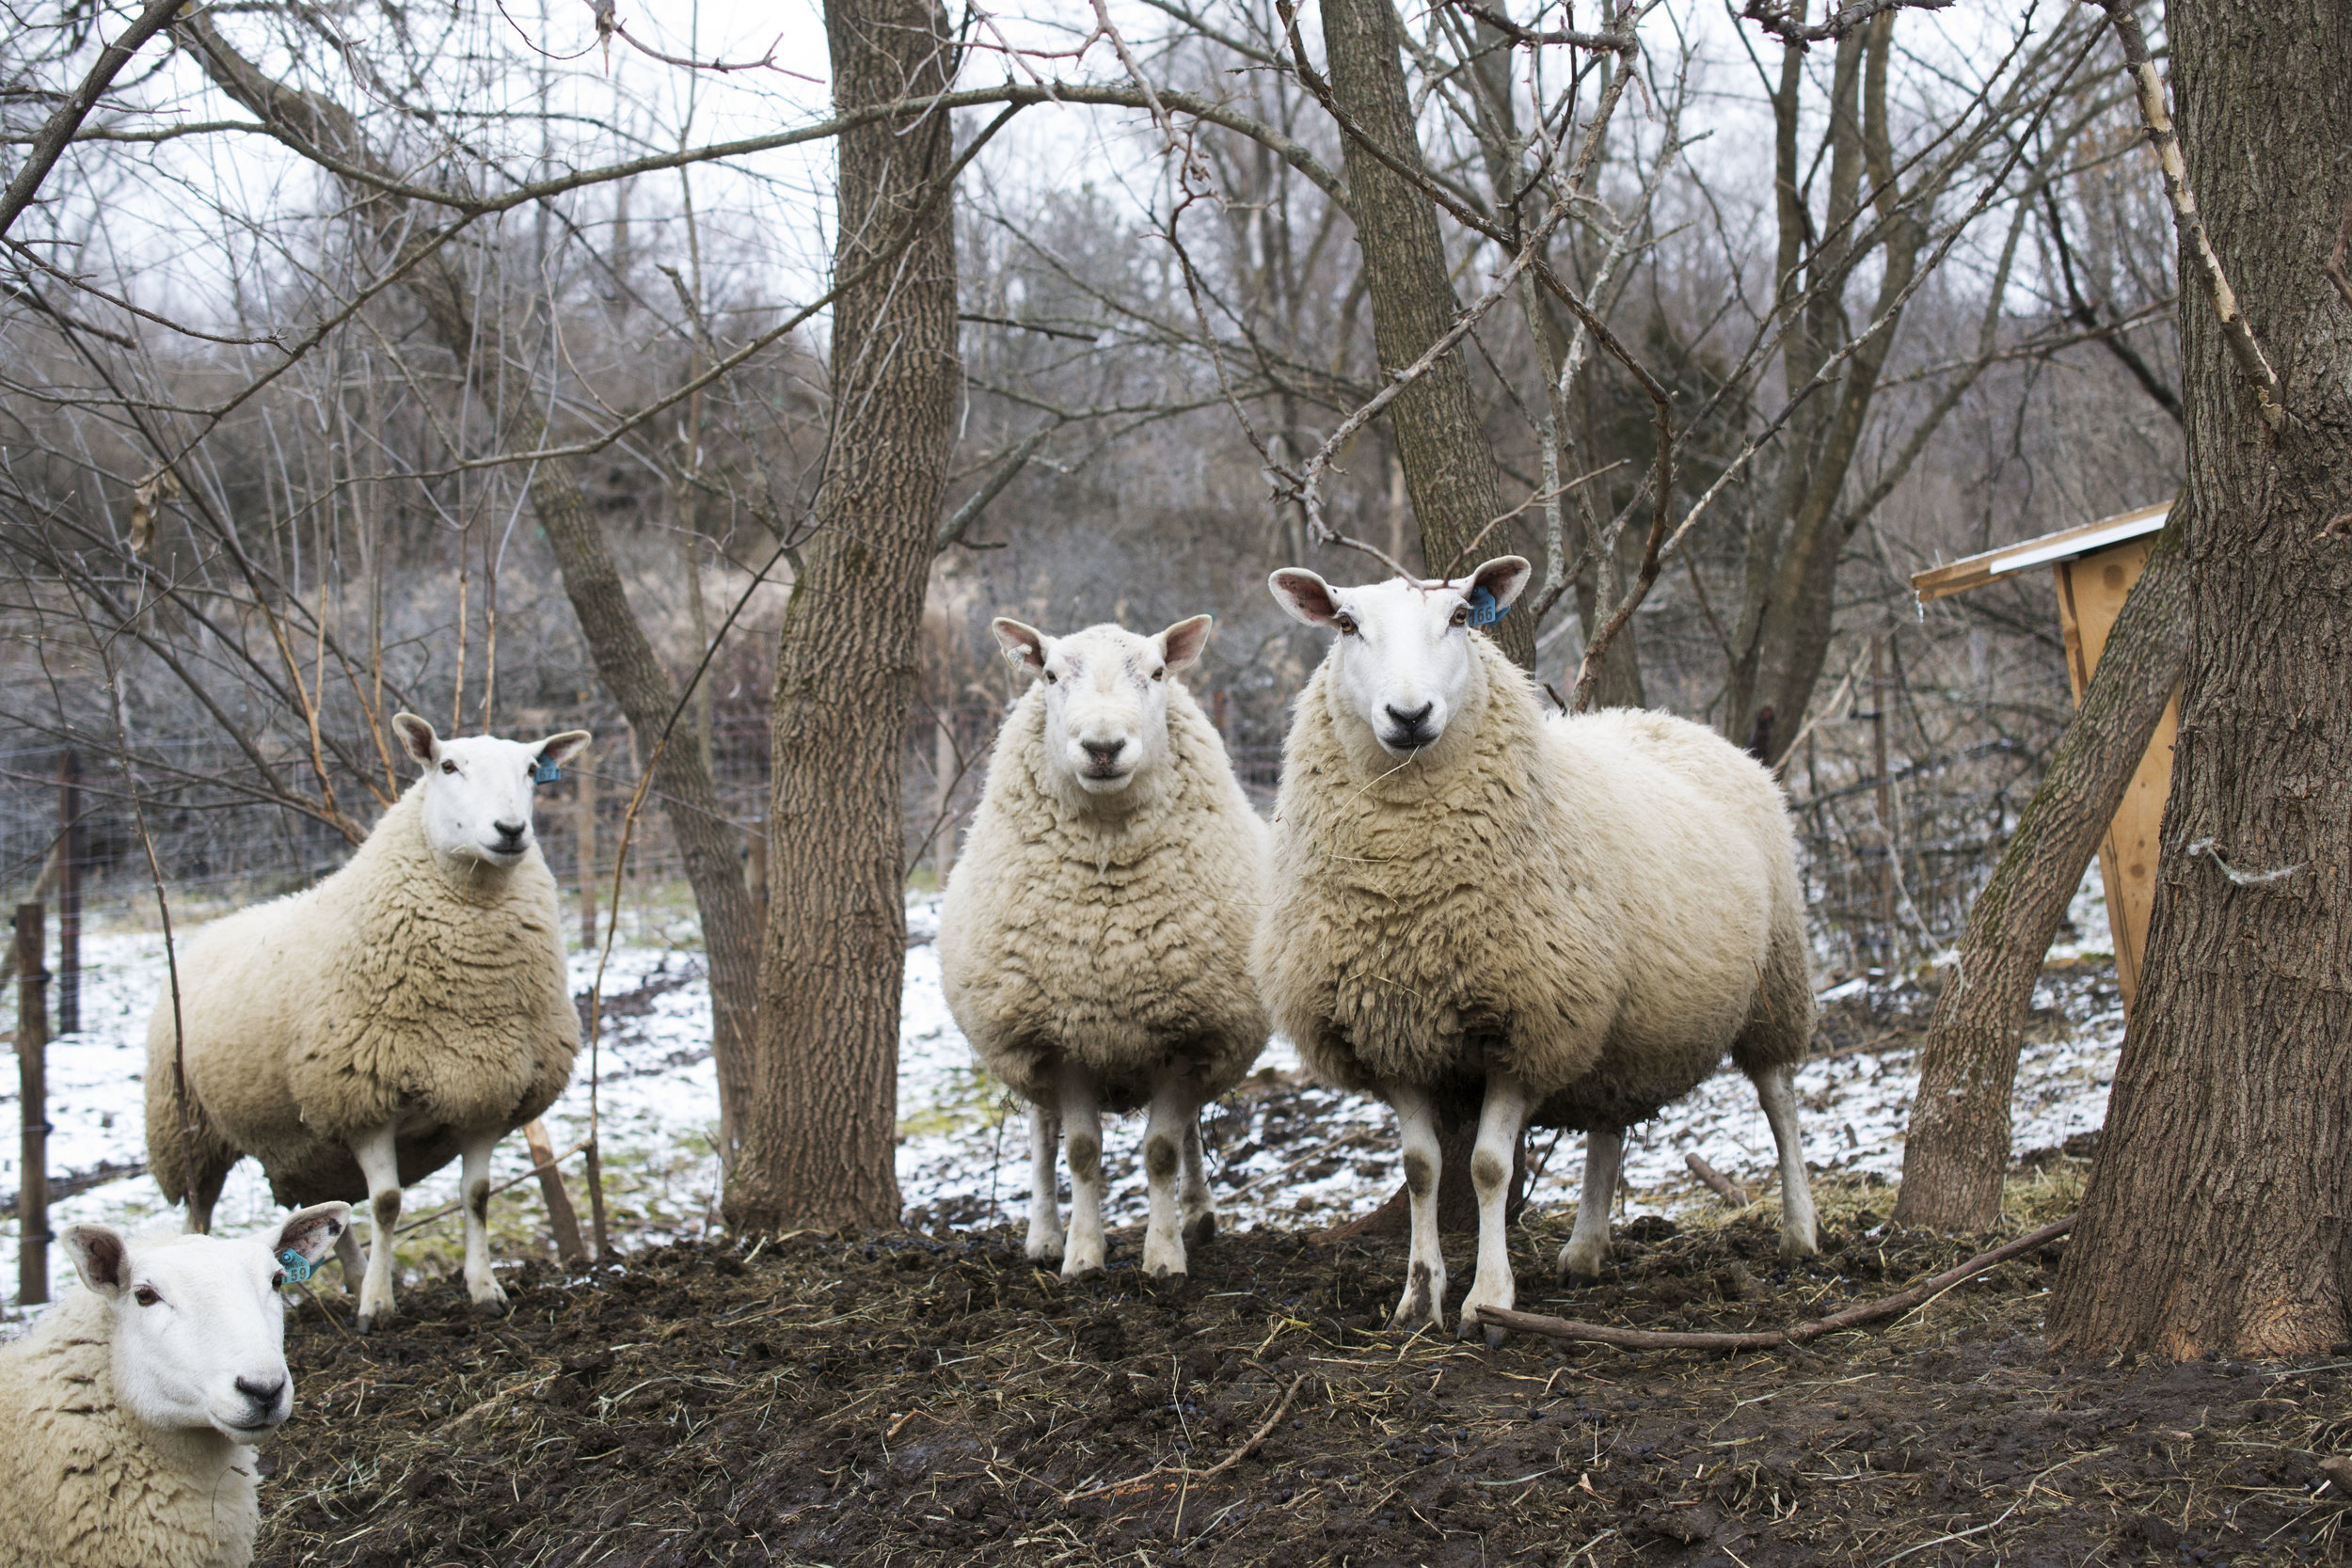 grass-fed beef and lamb madison wisconsin - humane farm - grassfed